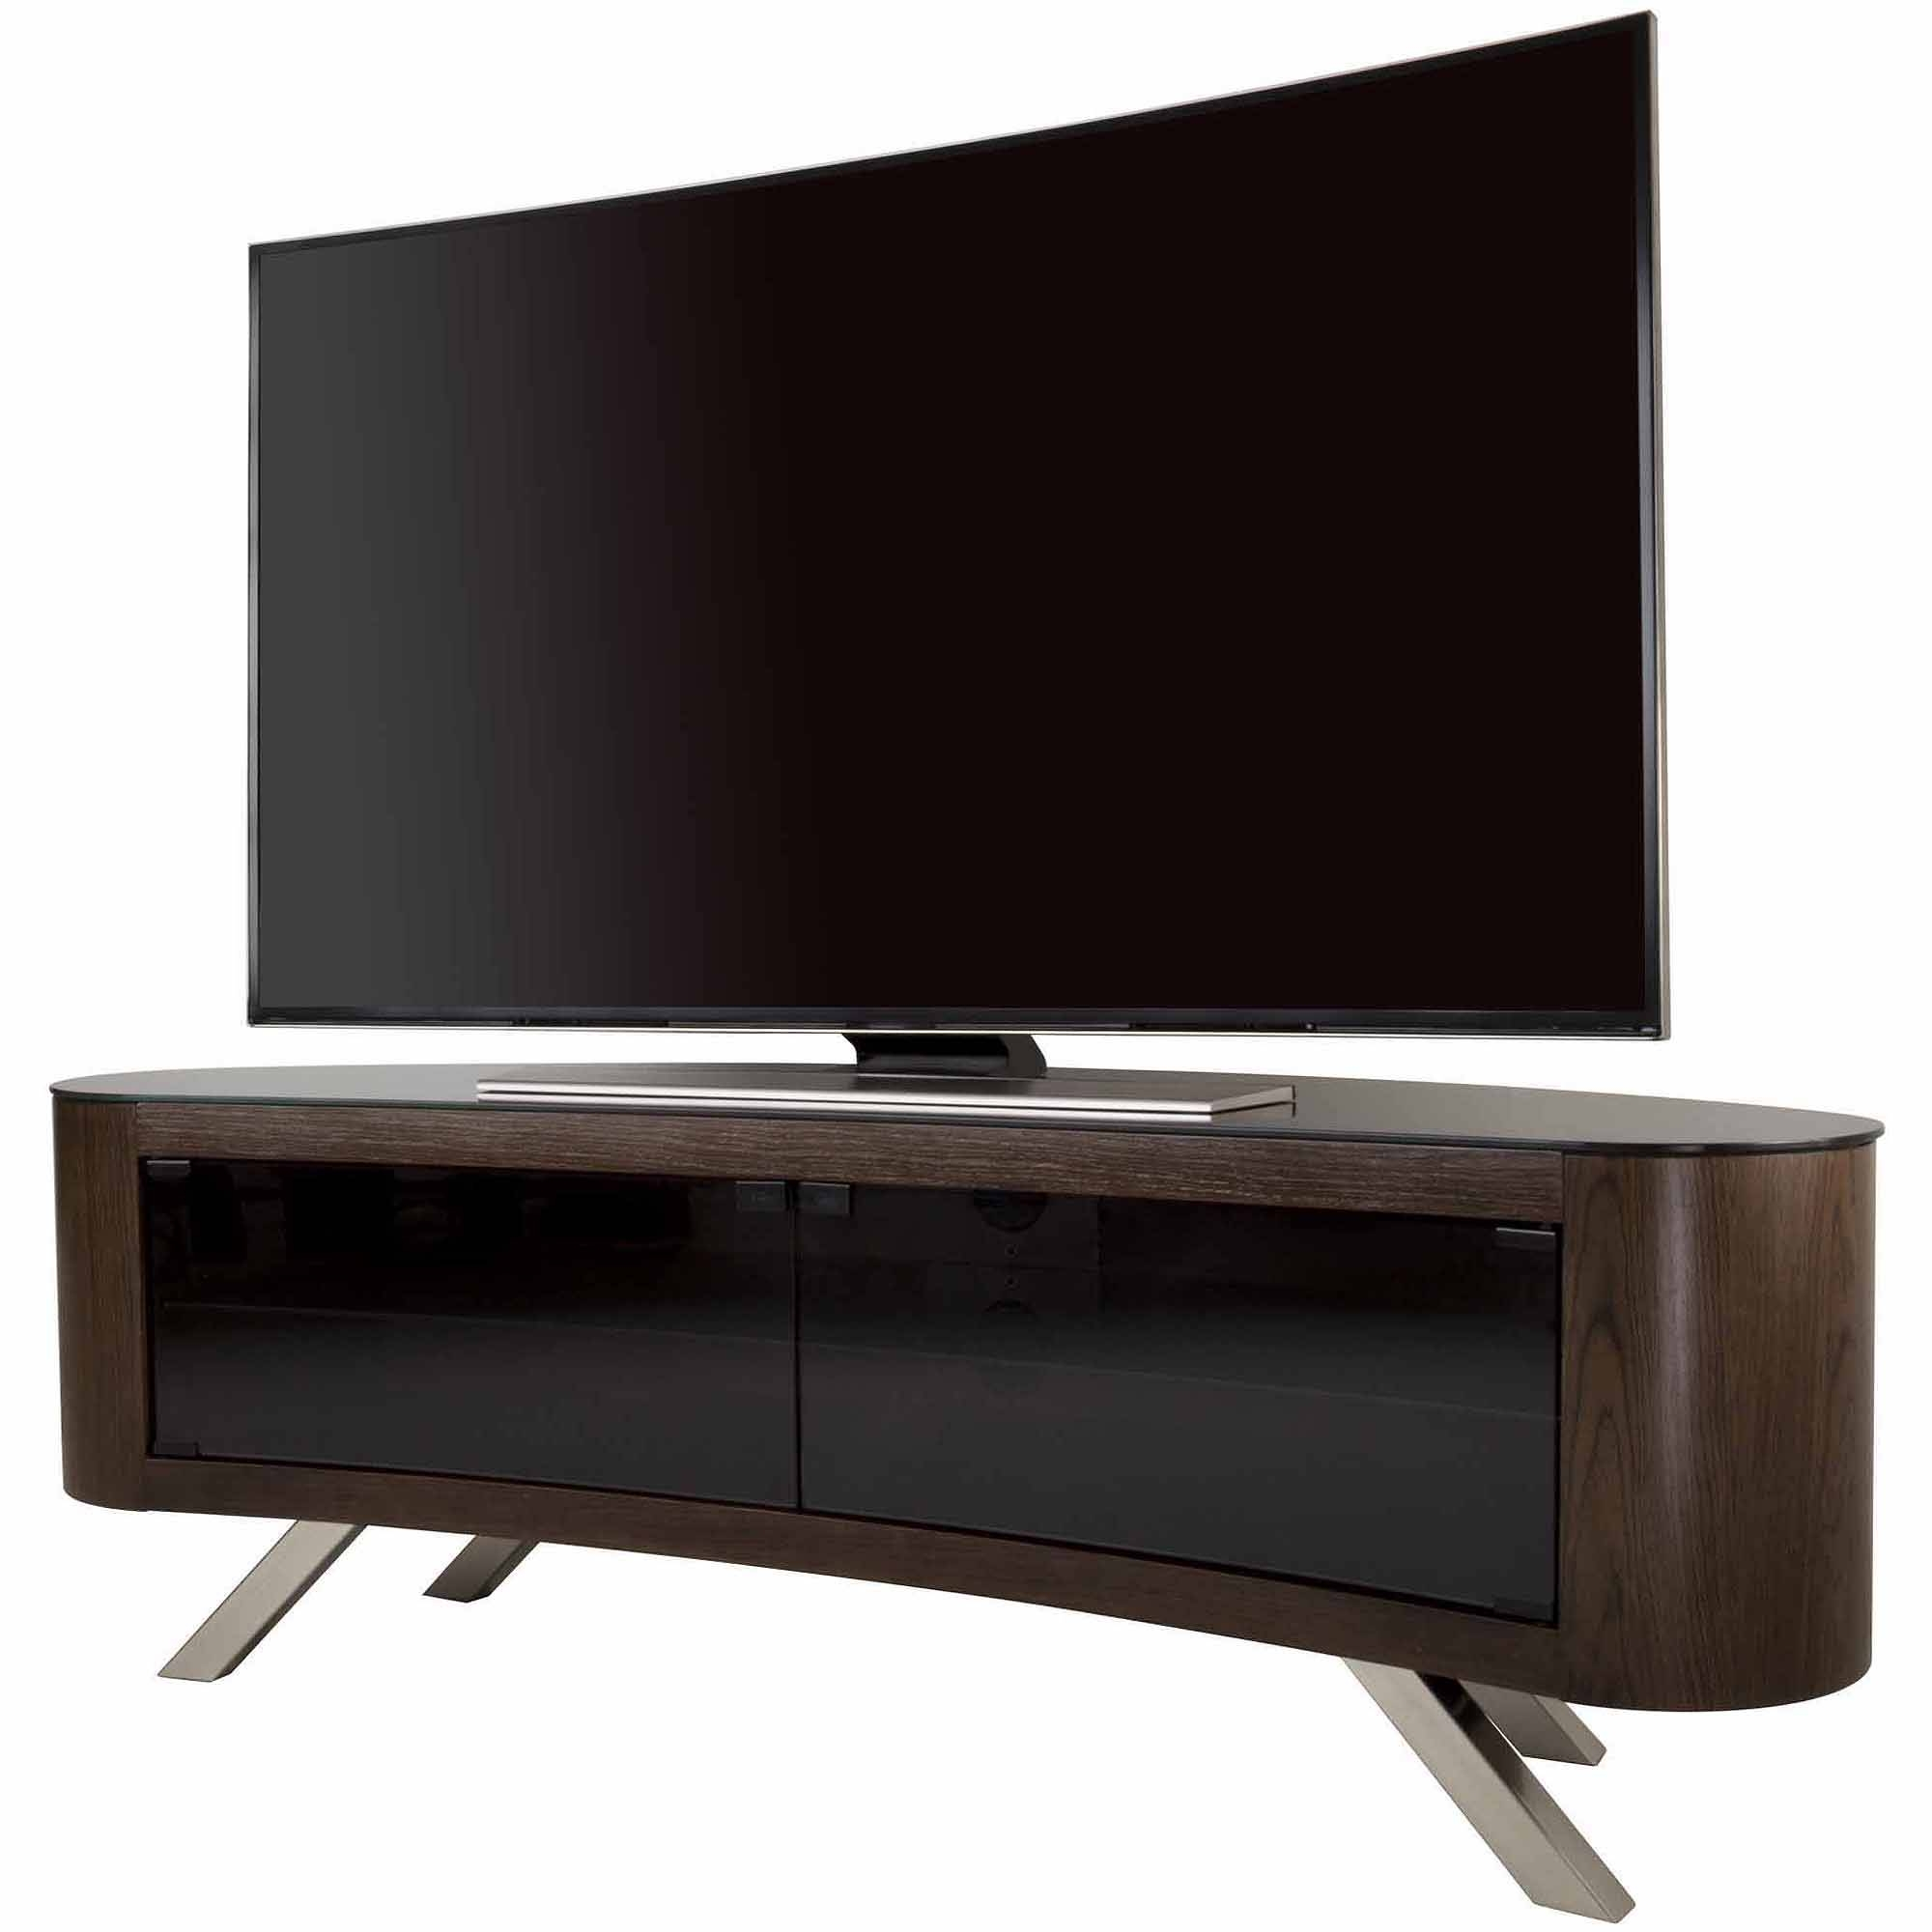 "Avf Bay Curved Tv Stand For Tvs Up To 70"" - Walmart inside Curve Tv Stands (Image 2 of 15)"